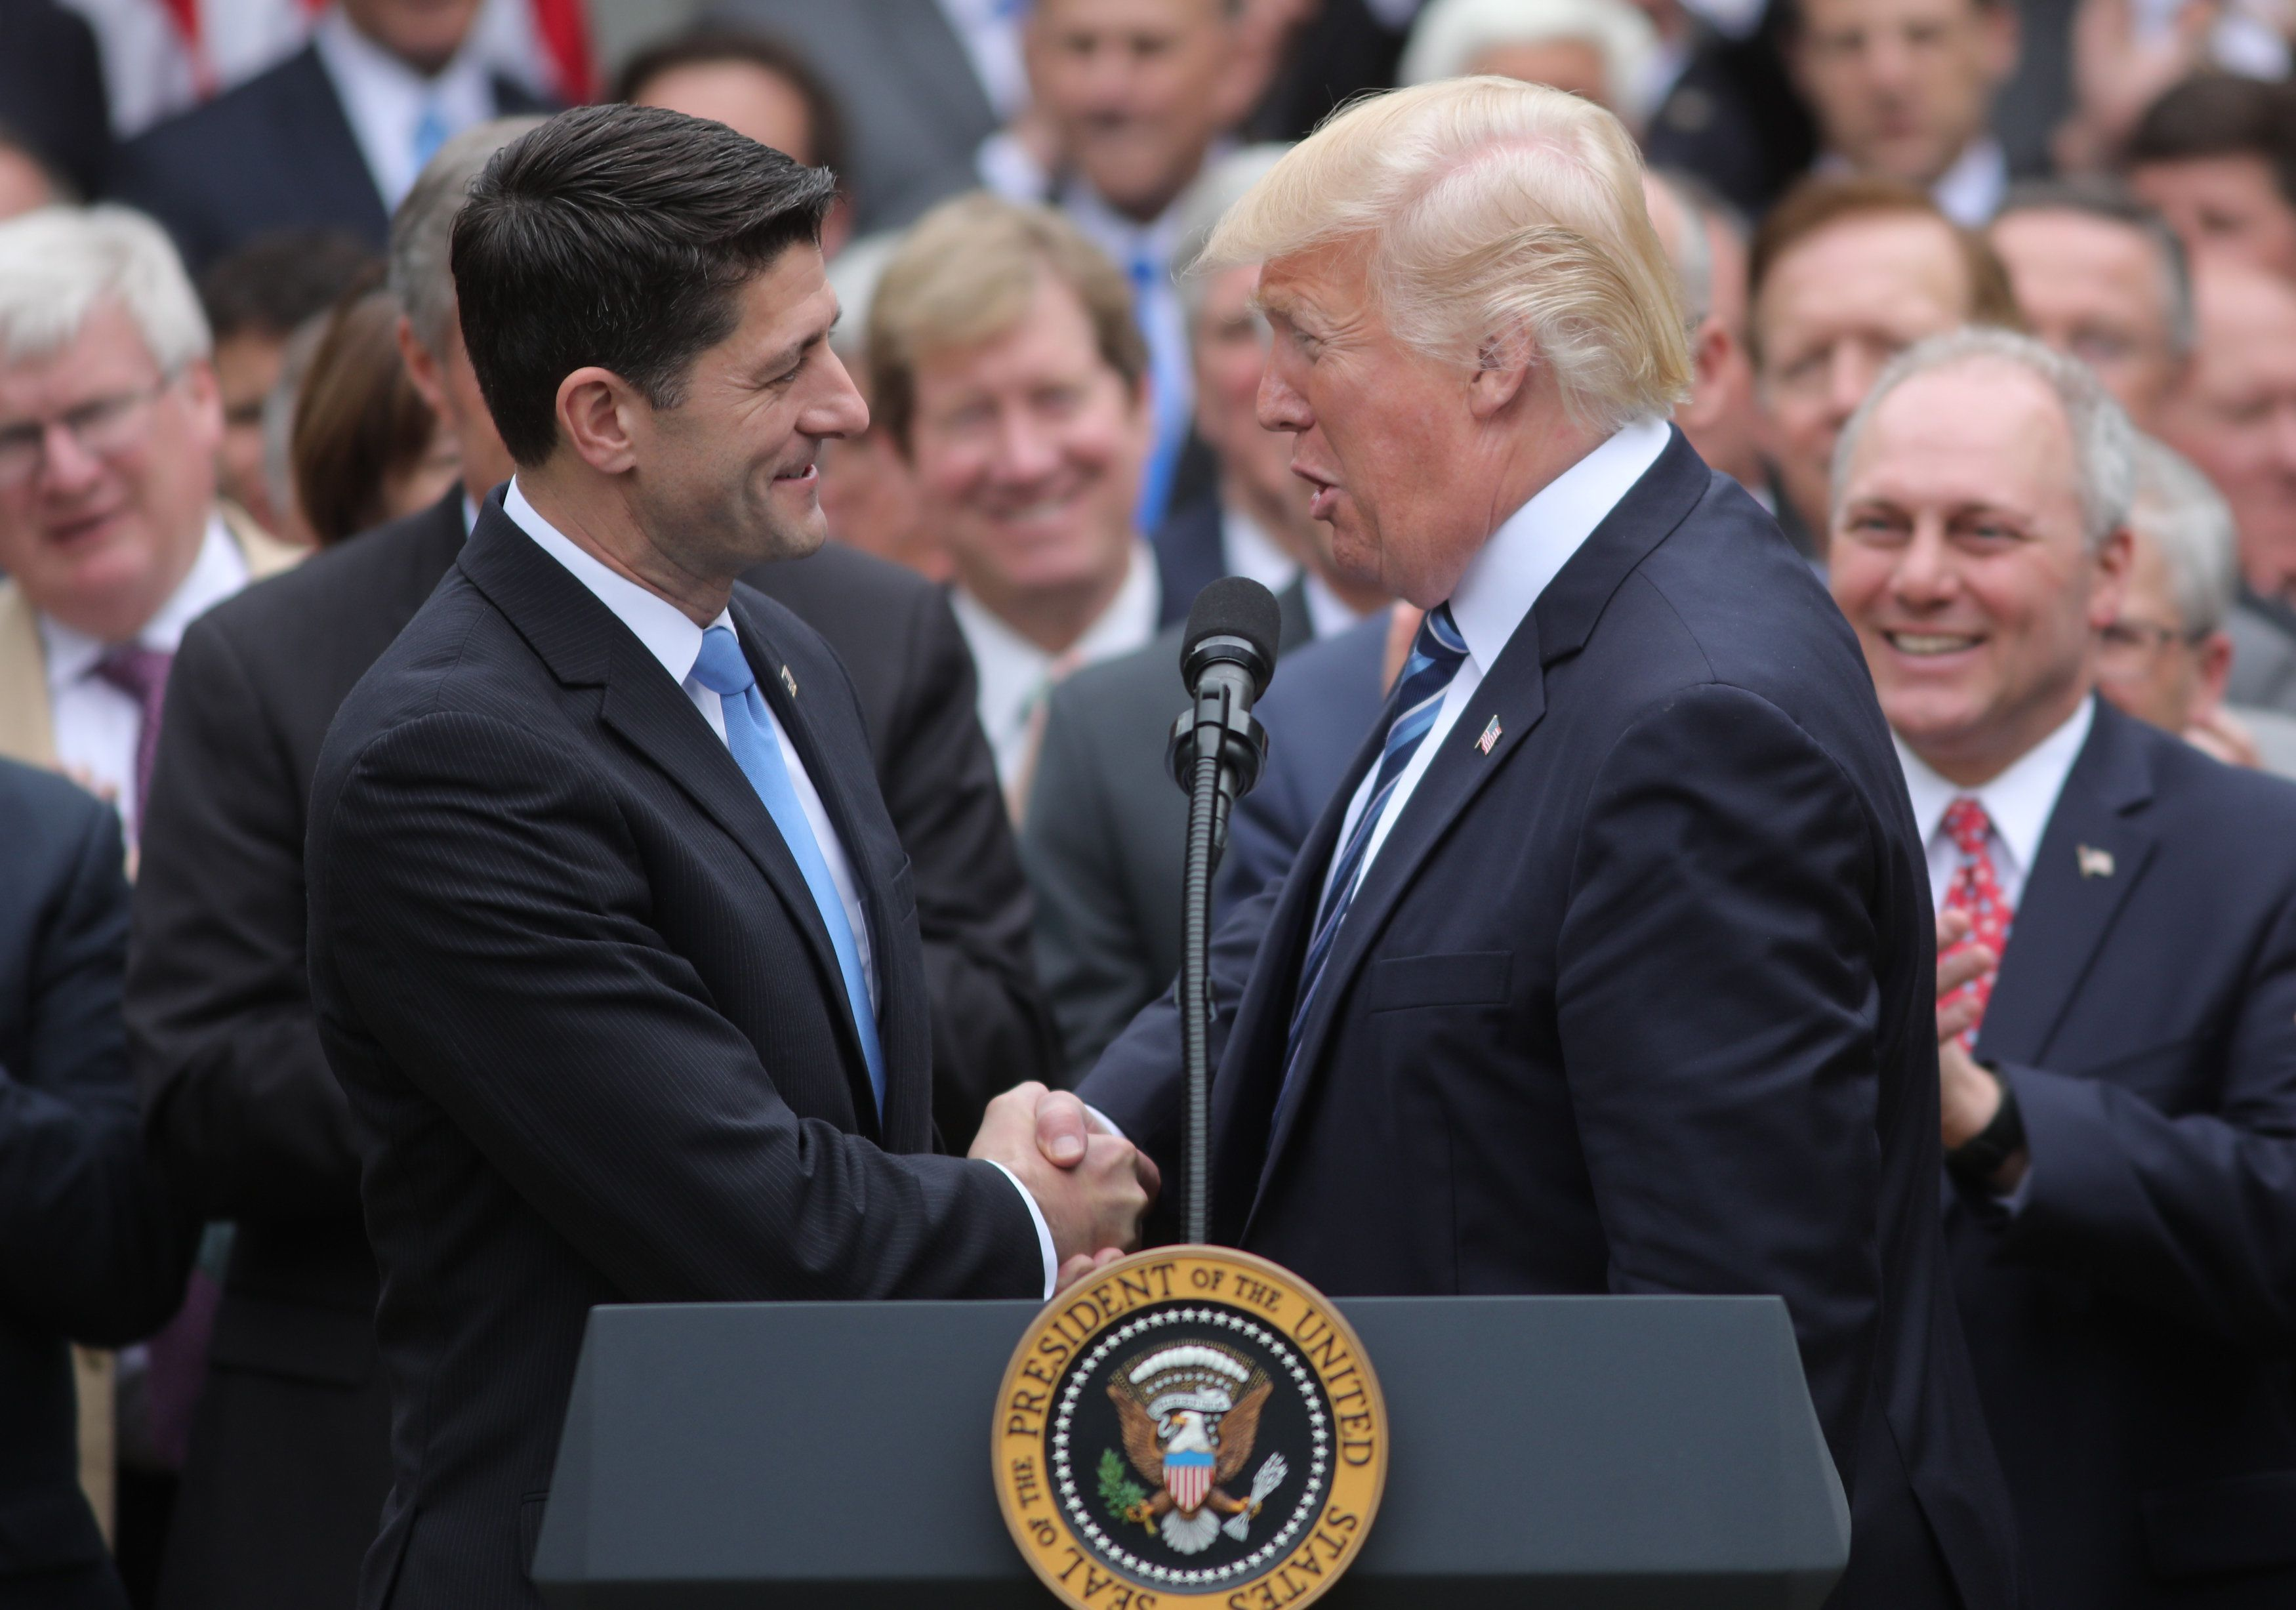 U.S. President Donald Trump congratulates House Speaker Paul Ryan (L) as he gathers with Congressional Republicans in the Rose Garden of the White House after the House of Representatives approved the American Healthcare Act, to repeal major parts of Obamacare and replace it with the Republican healthcare plan, in Washington, U.S., May 4, 2017. REUTERS/Carlos Barria